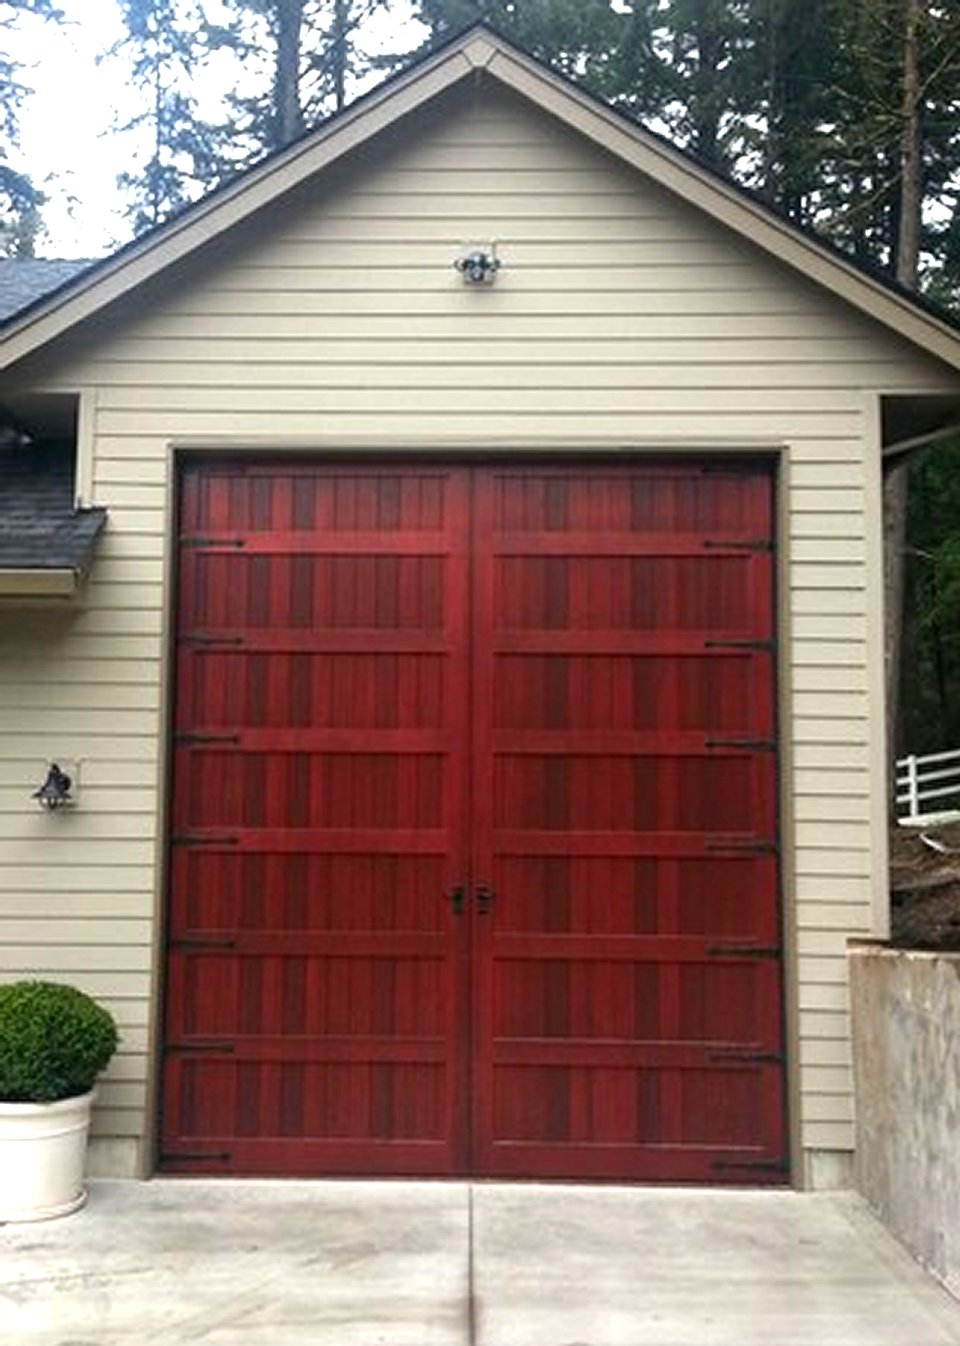 Bi fold carriage doors 16 ft x 8 ft insulated wood for Rv garage door